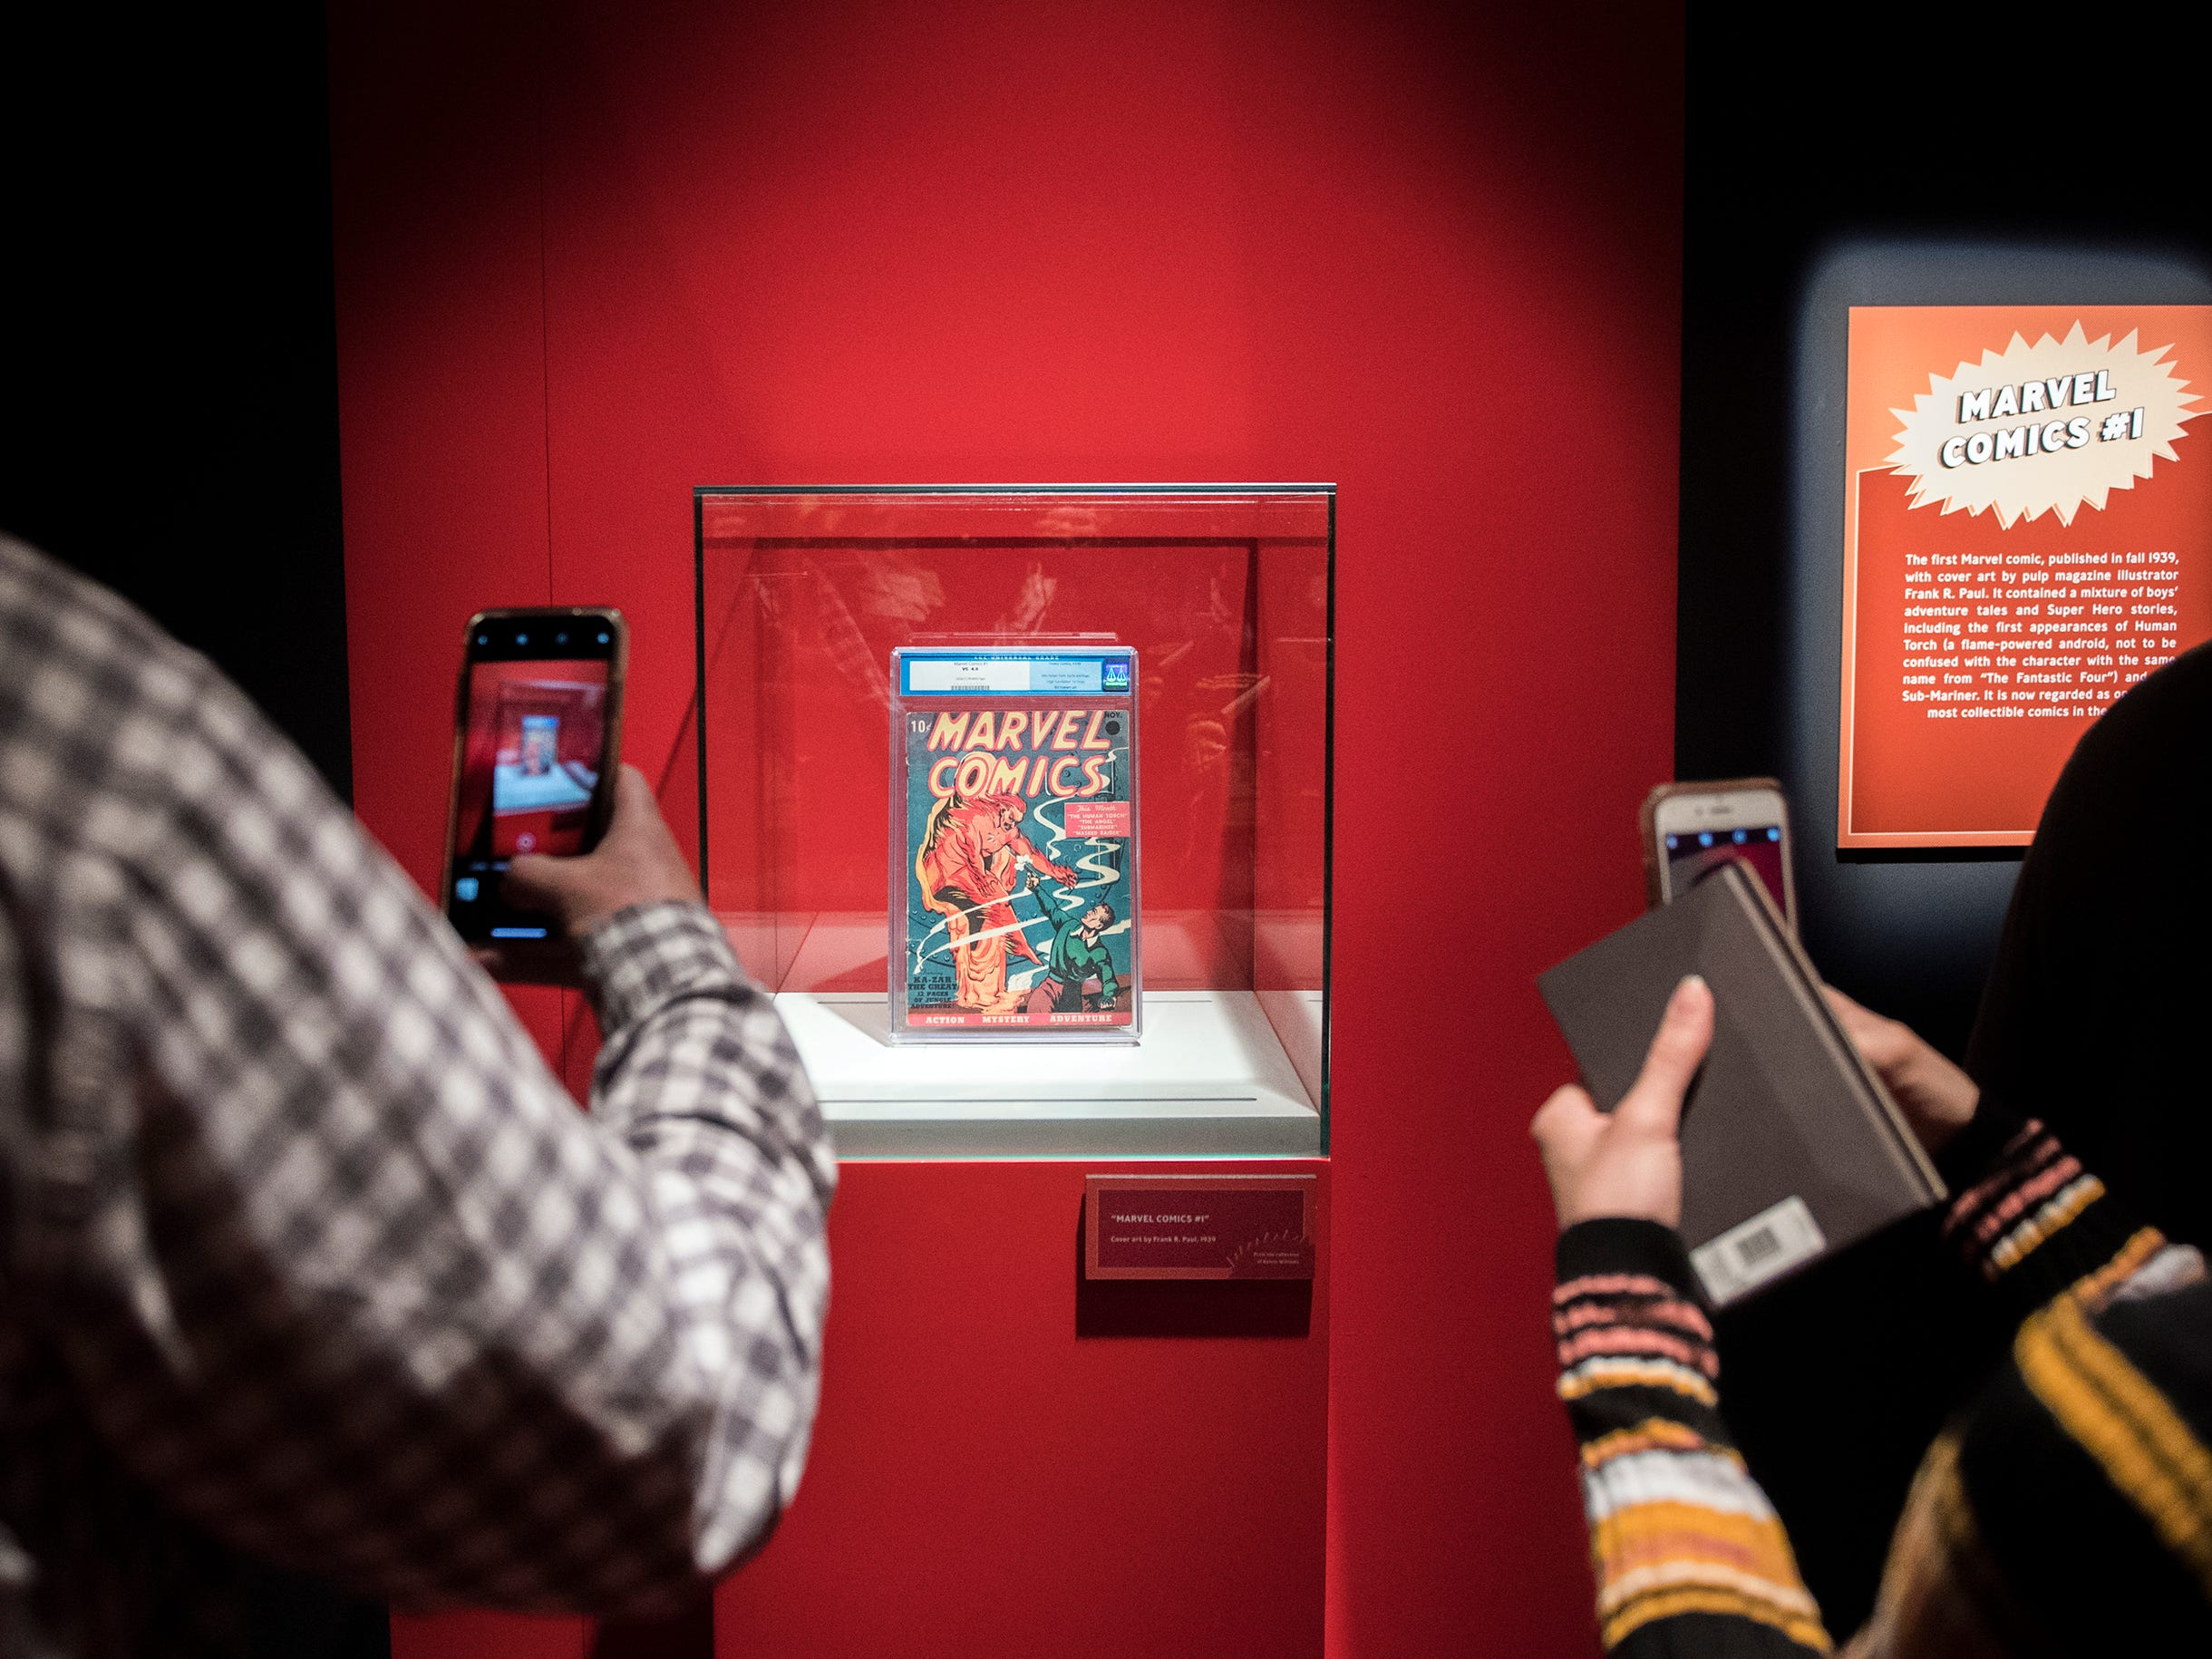 Guests photograph a rare copy of the first ever Marvel comic at the new 'Marvel: Universe of Super Heroes' installation at the Franklin Institute Friday, April 12, 2019 in Philadelphia, Pa. The exhibit runs from April 13-September 2.